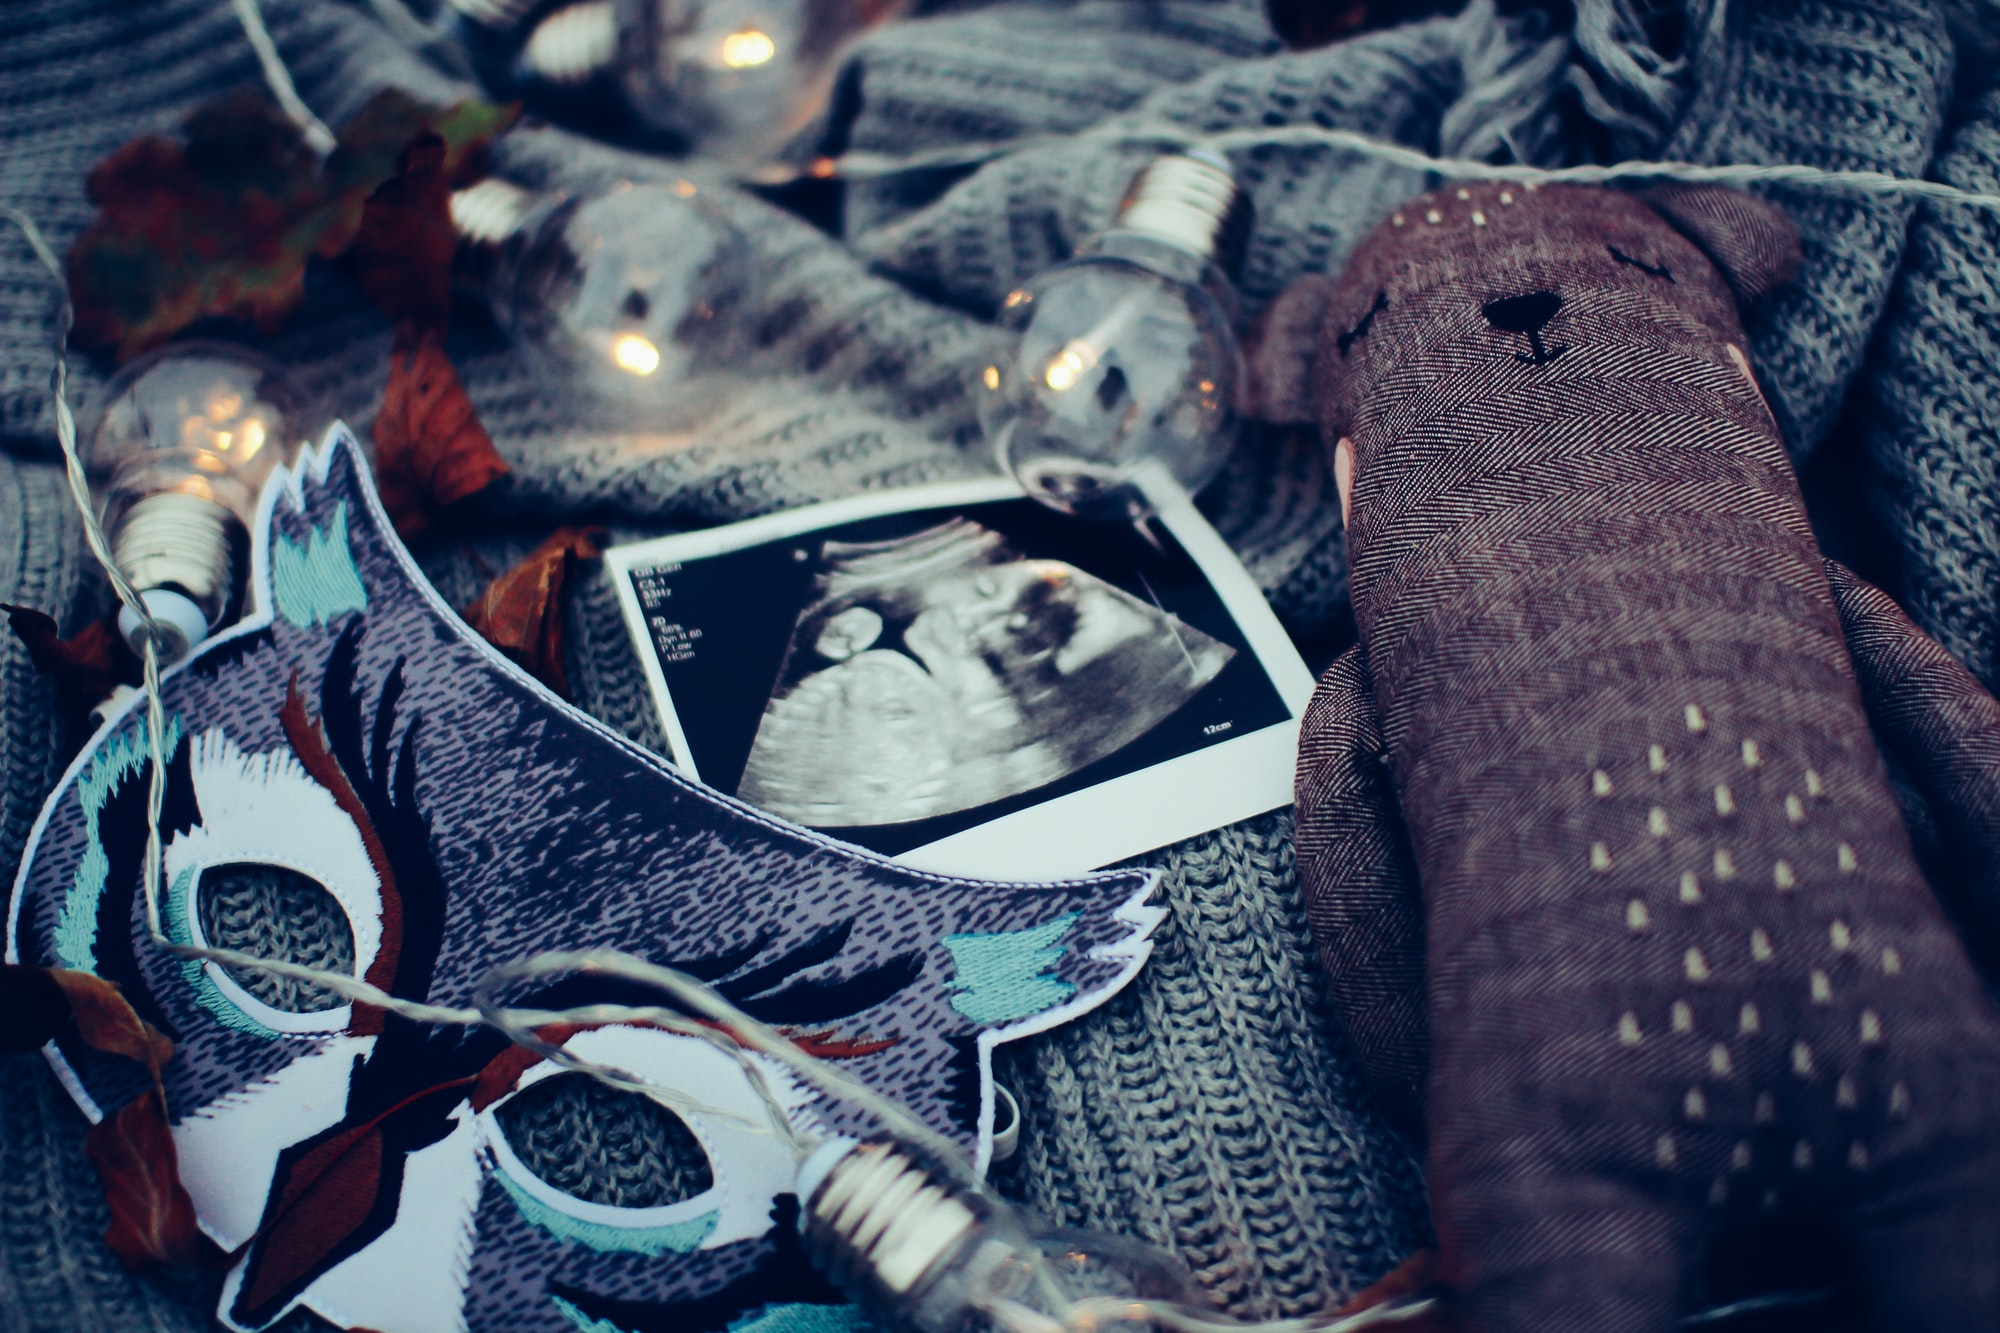 The Tragedy Of The Unborn: Don't Forget To Cry